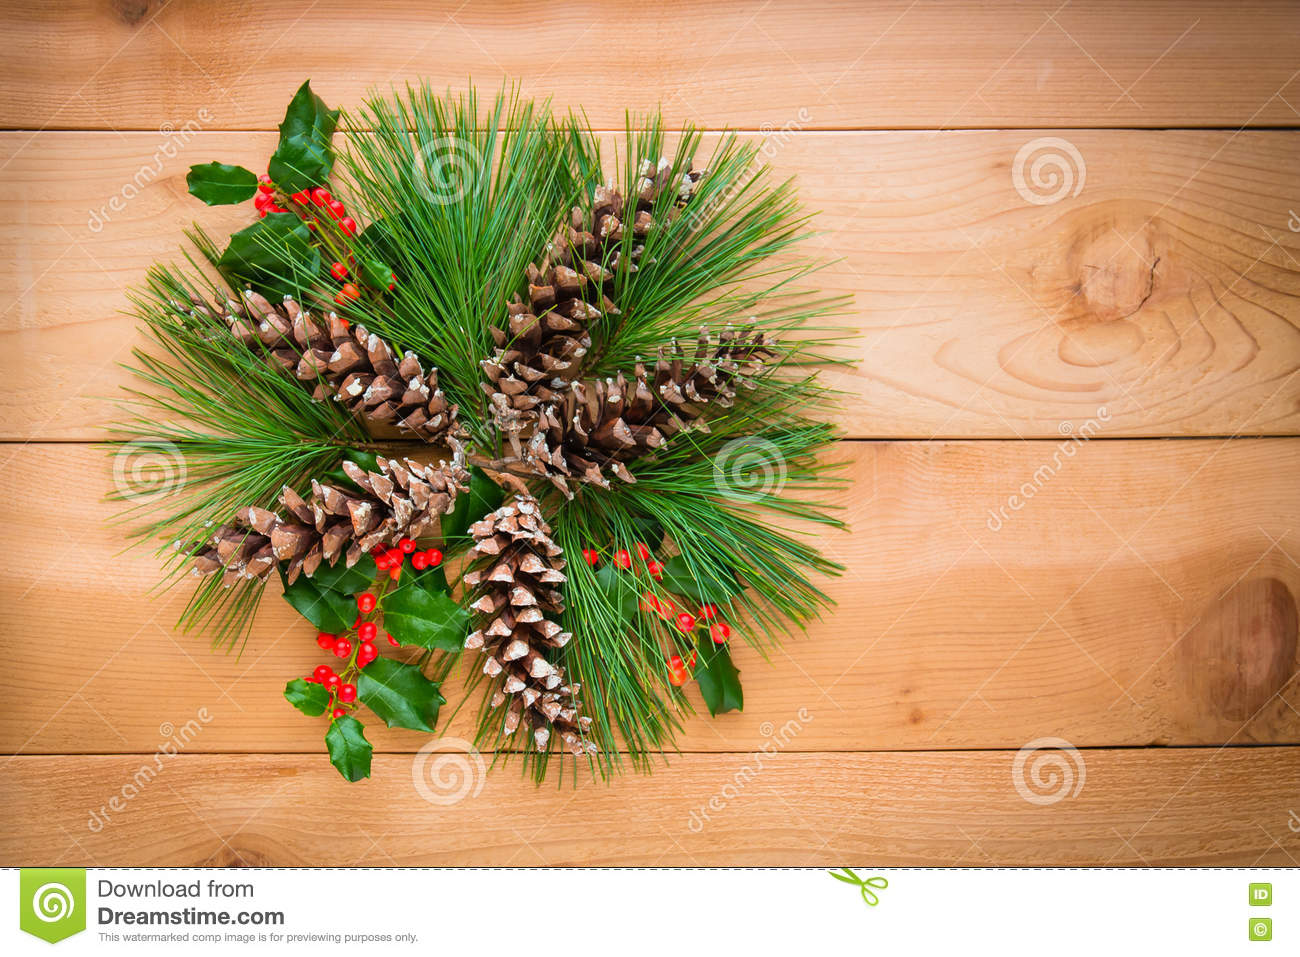 Christmas decoration composition of pine cones and branches with